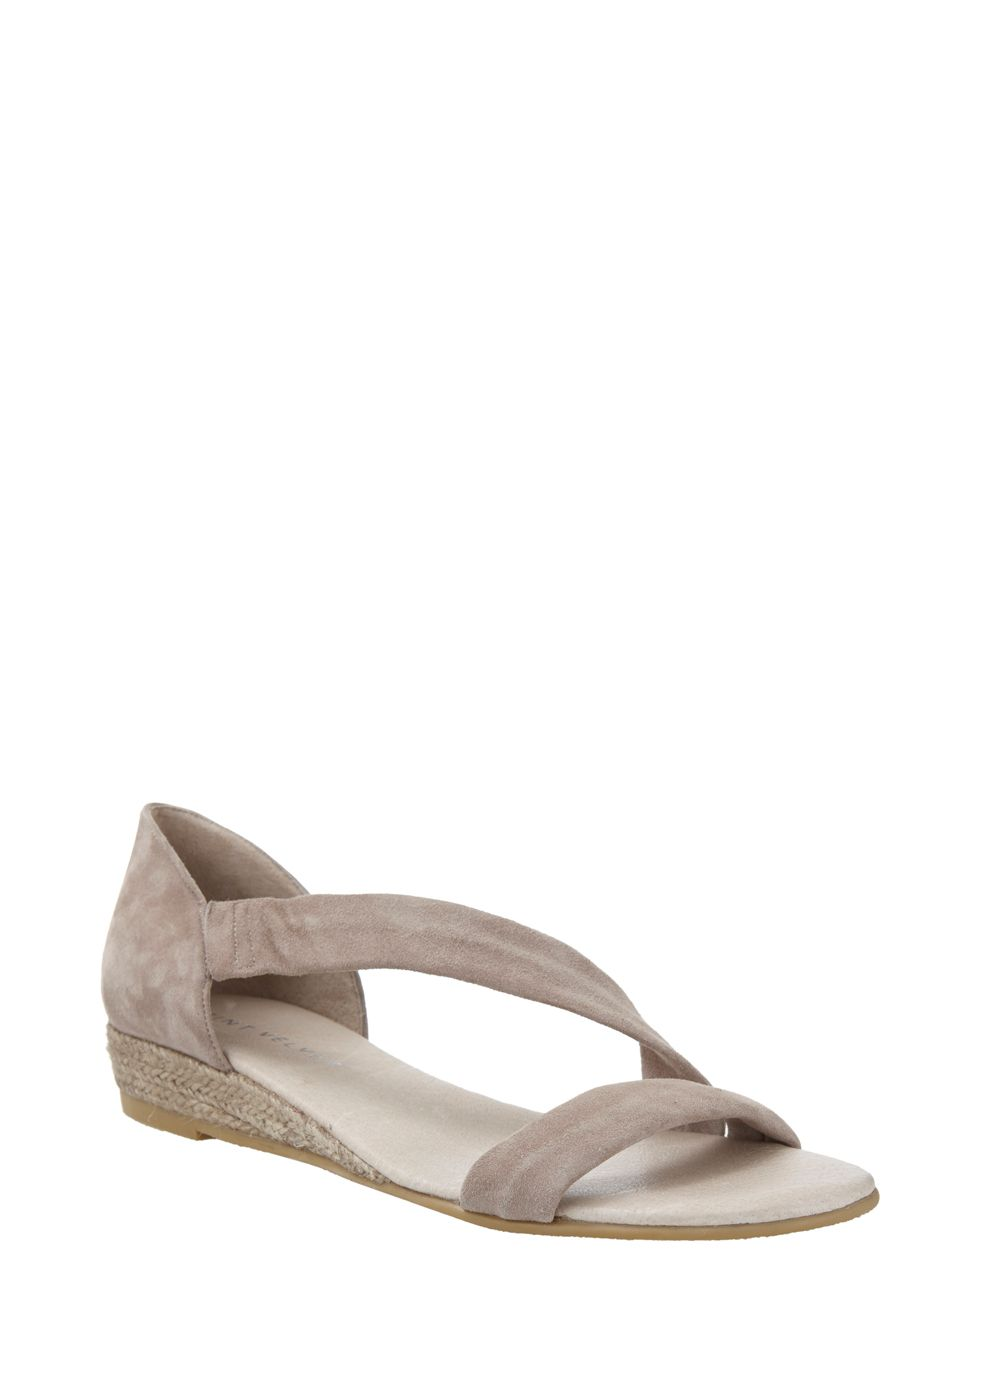 Mink ella low wedge